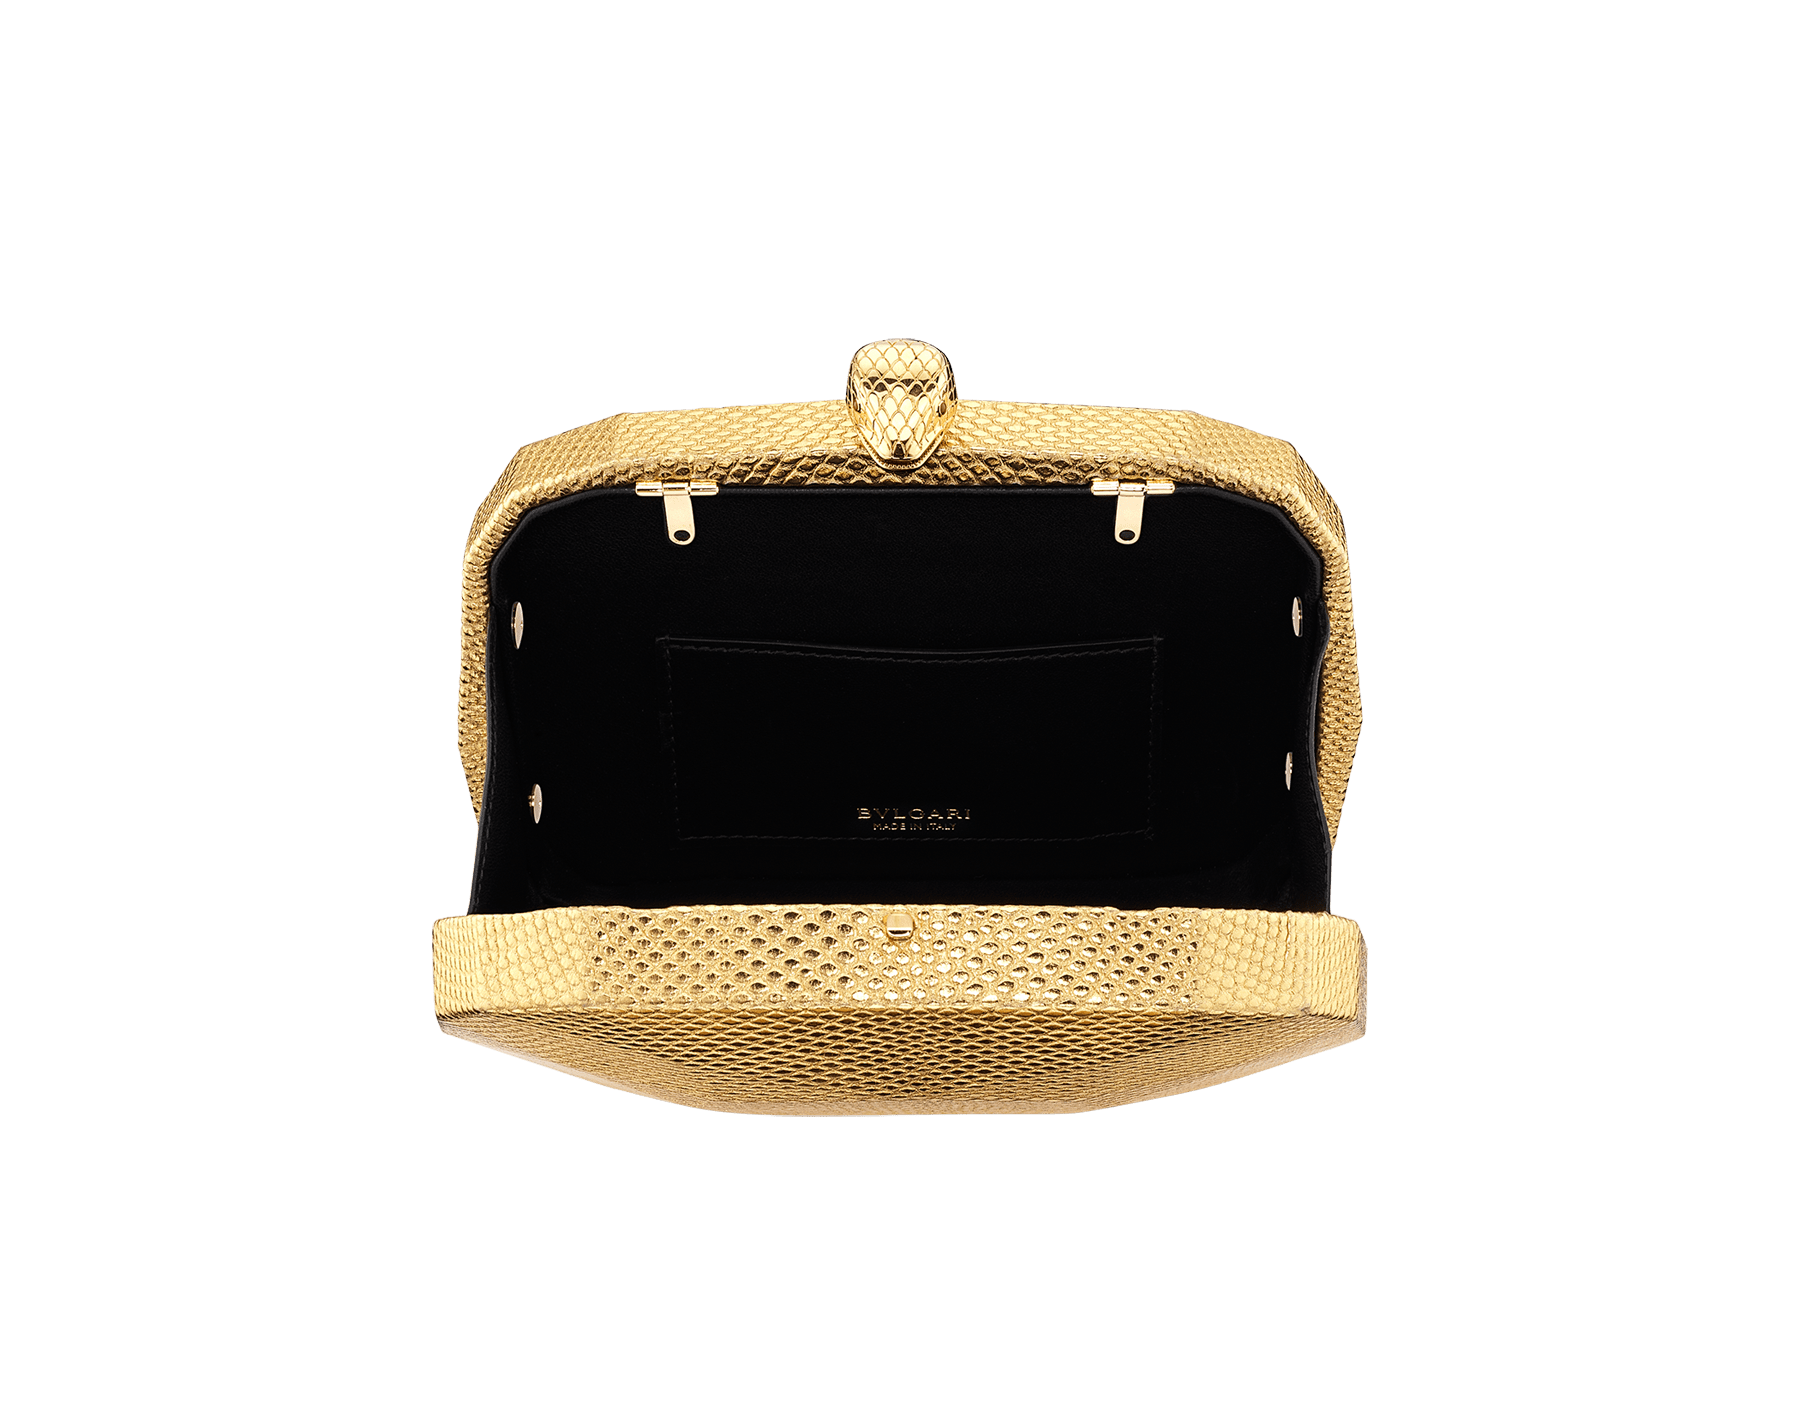 """""""BVLGARI Cocktail"""" hard clutch in """"Molten"""" gold karung skin with black nappa leather inner lining. New Serpenti head closure in gold-plated brass complete with ruby-red enamel eyes. 526-BRILLIANTCUT image 2"""